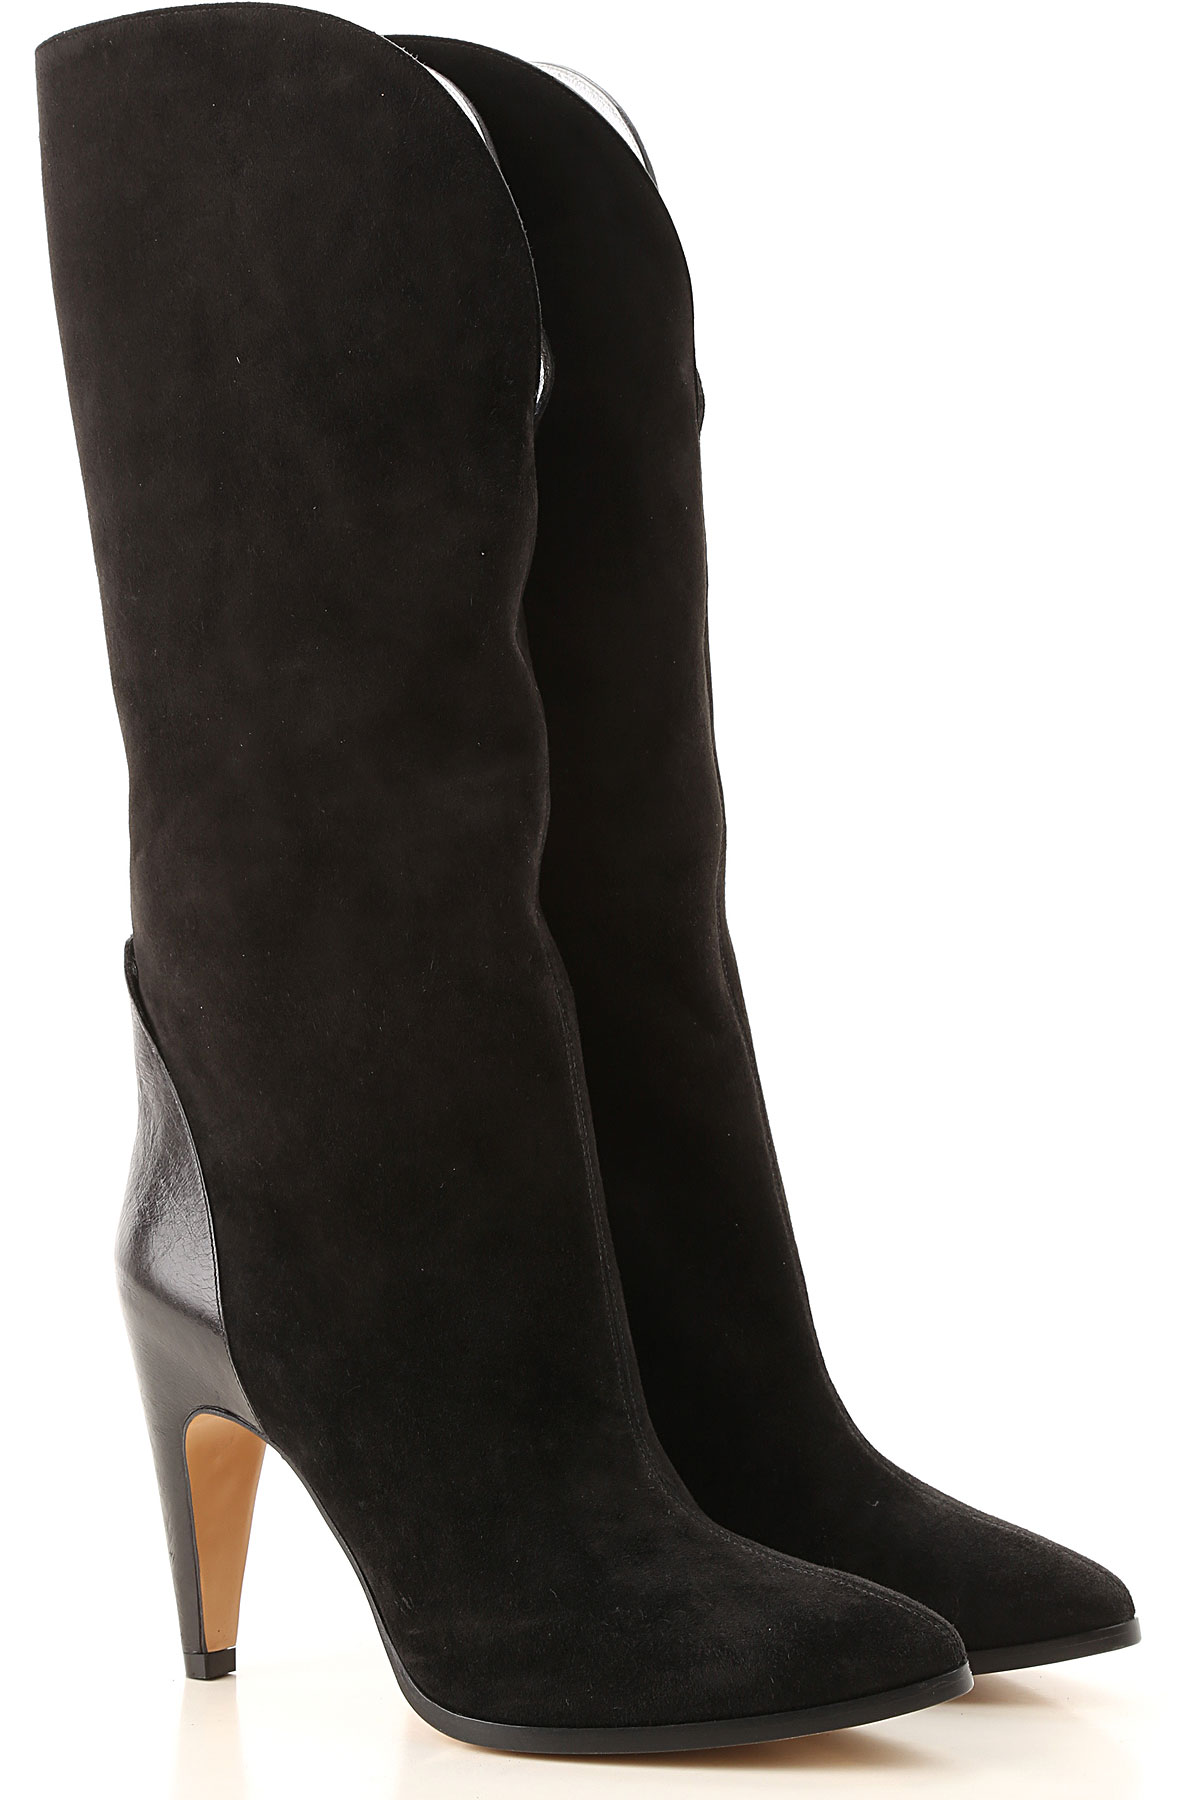 Givenchy Boots for Women, Booties On Sale in Outlet, Black, Suede leather, 2019, 10 6 7